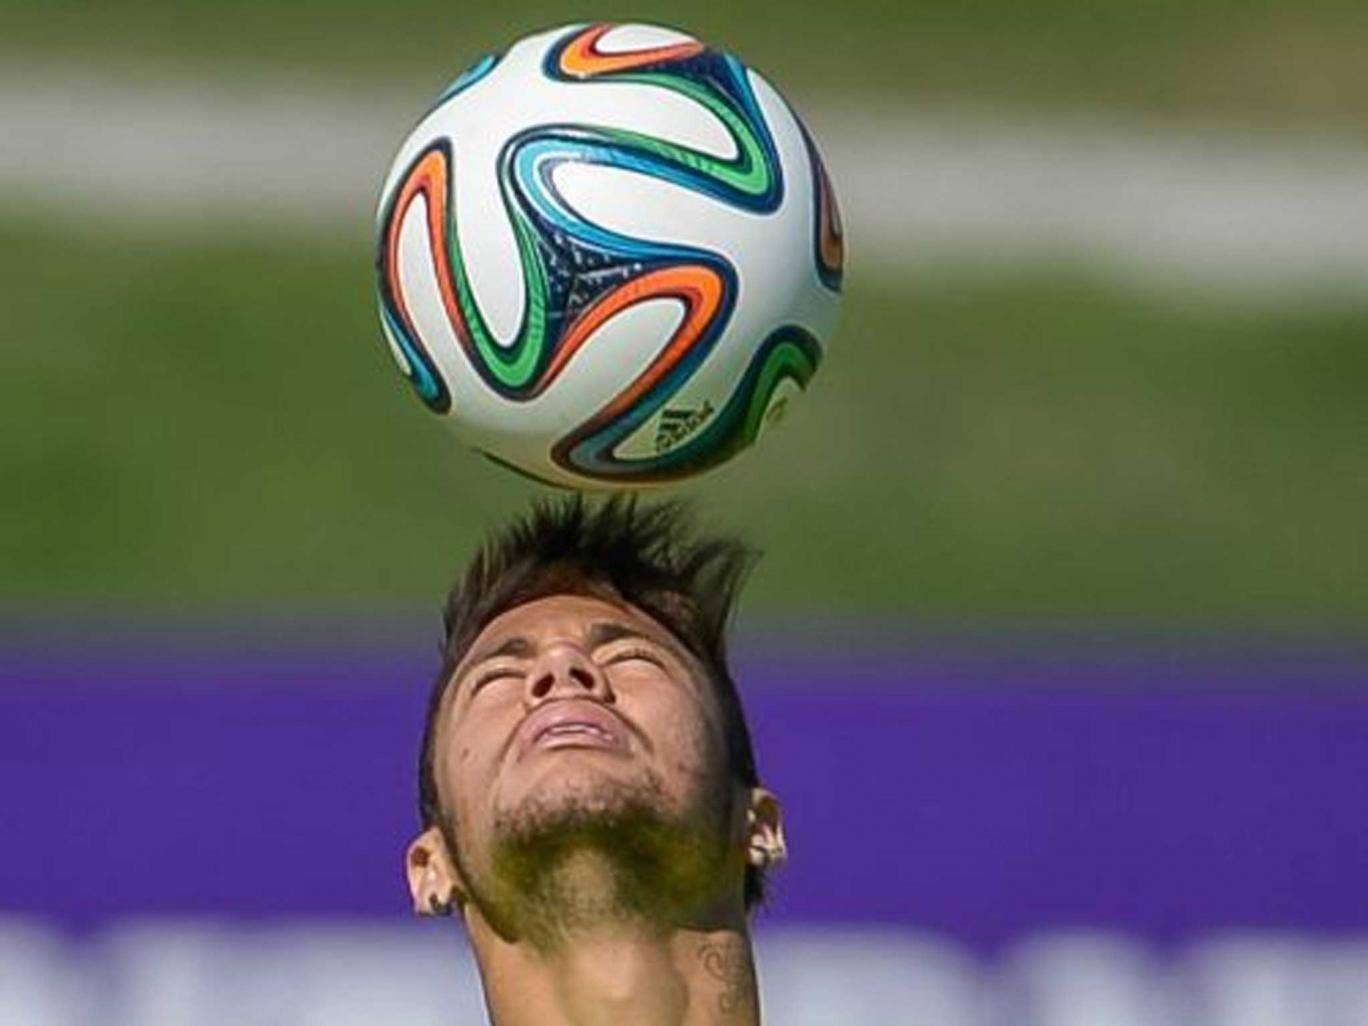 Neymar in action during a training session of the Brazilian national football team